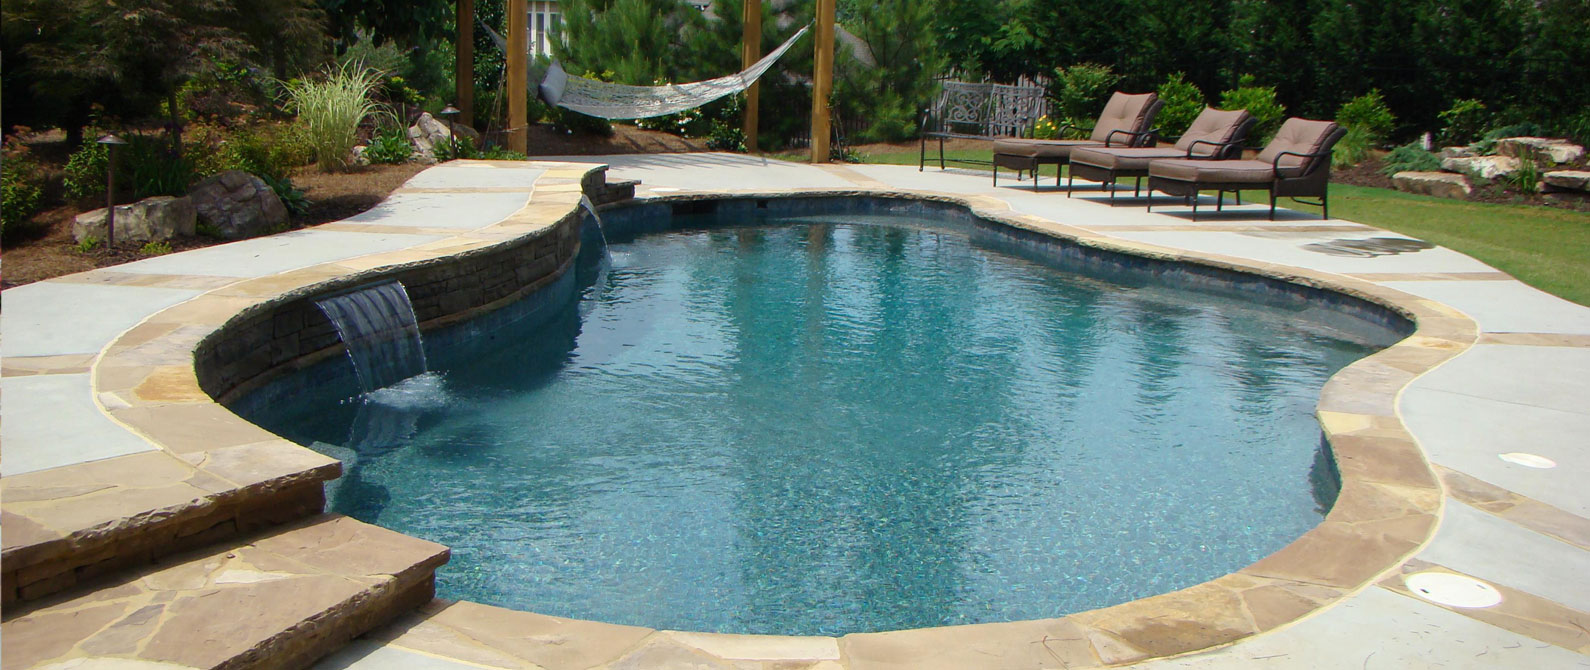 Pool and spa deluxe home design for Pool design inc